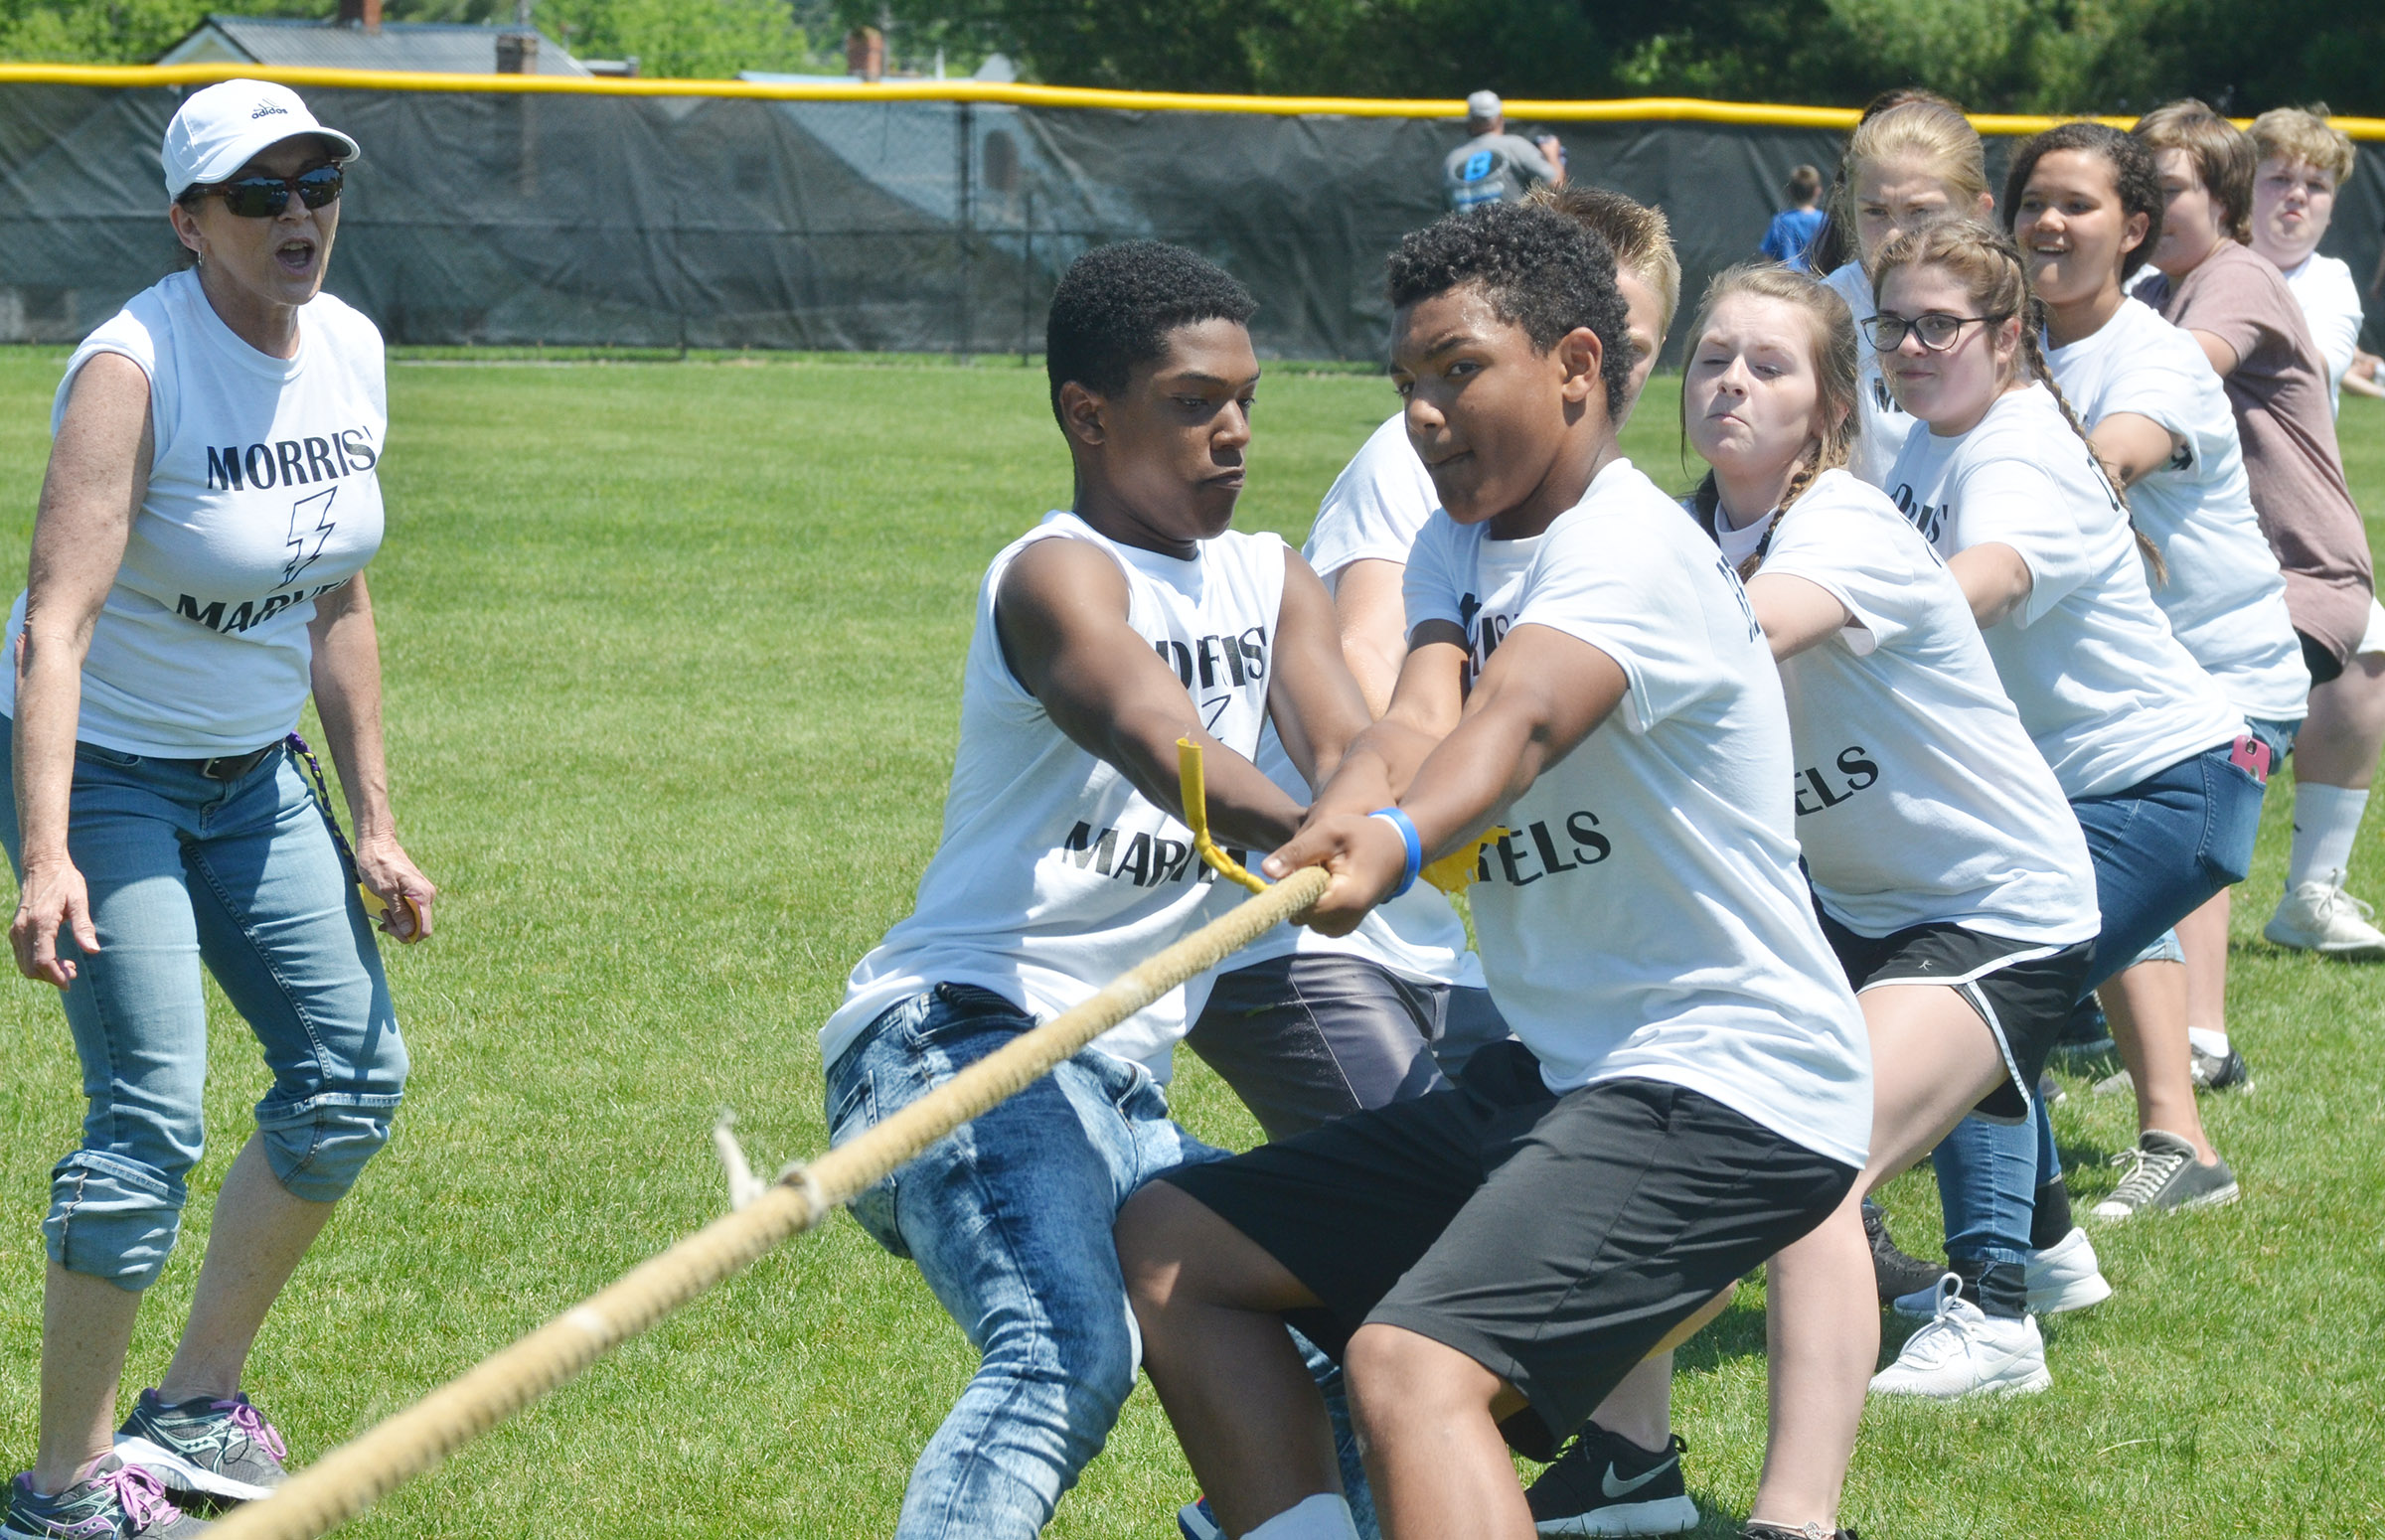 CMS eighth-grade teacher Melisa Morris cheers for her students as they compete in tug of war.